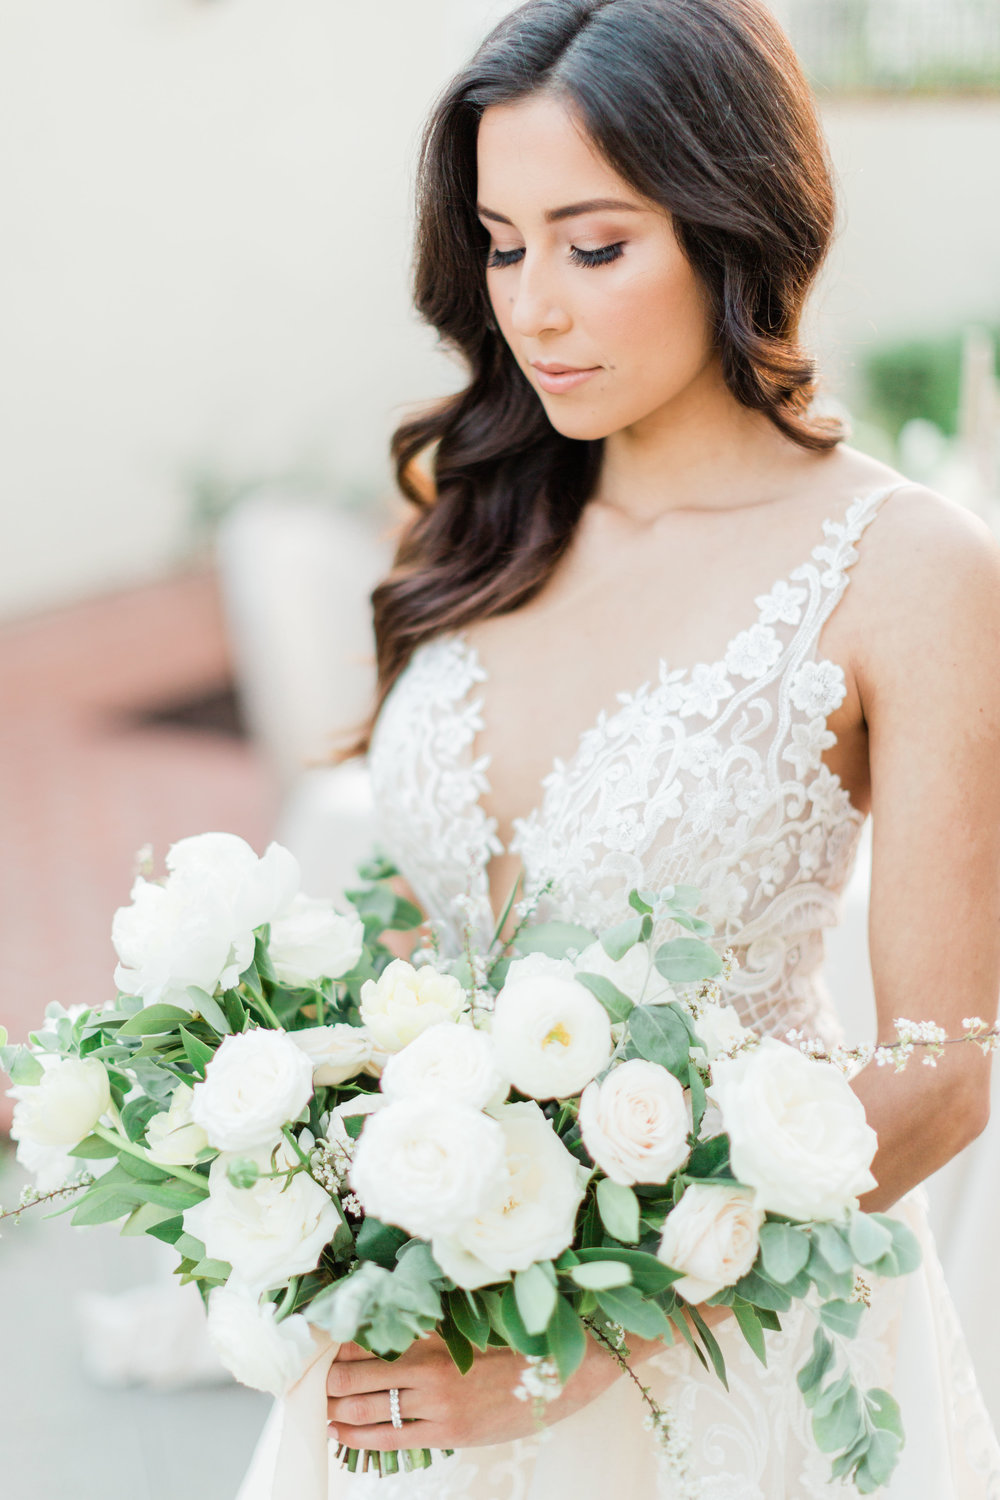 323_Inn_at_Rancho_Santa_Fe_Wedding_Devon_Donnahoo_Photography.jpg